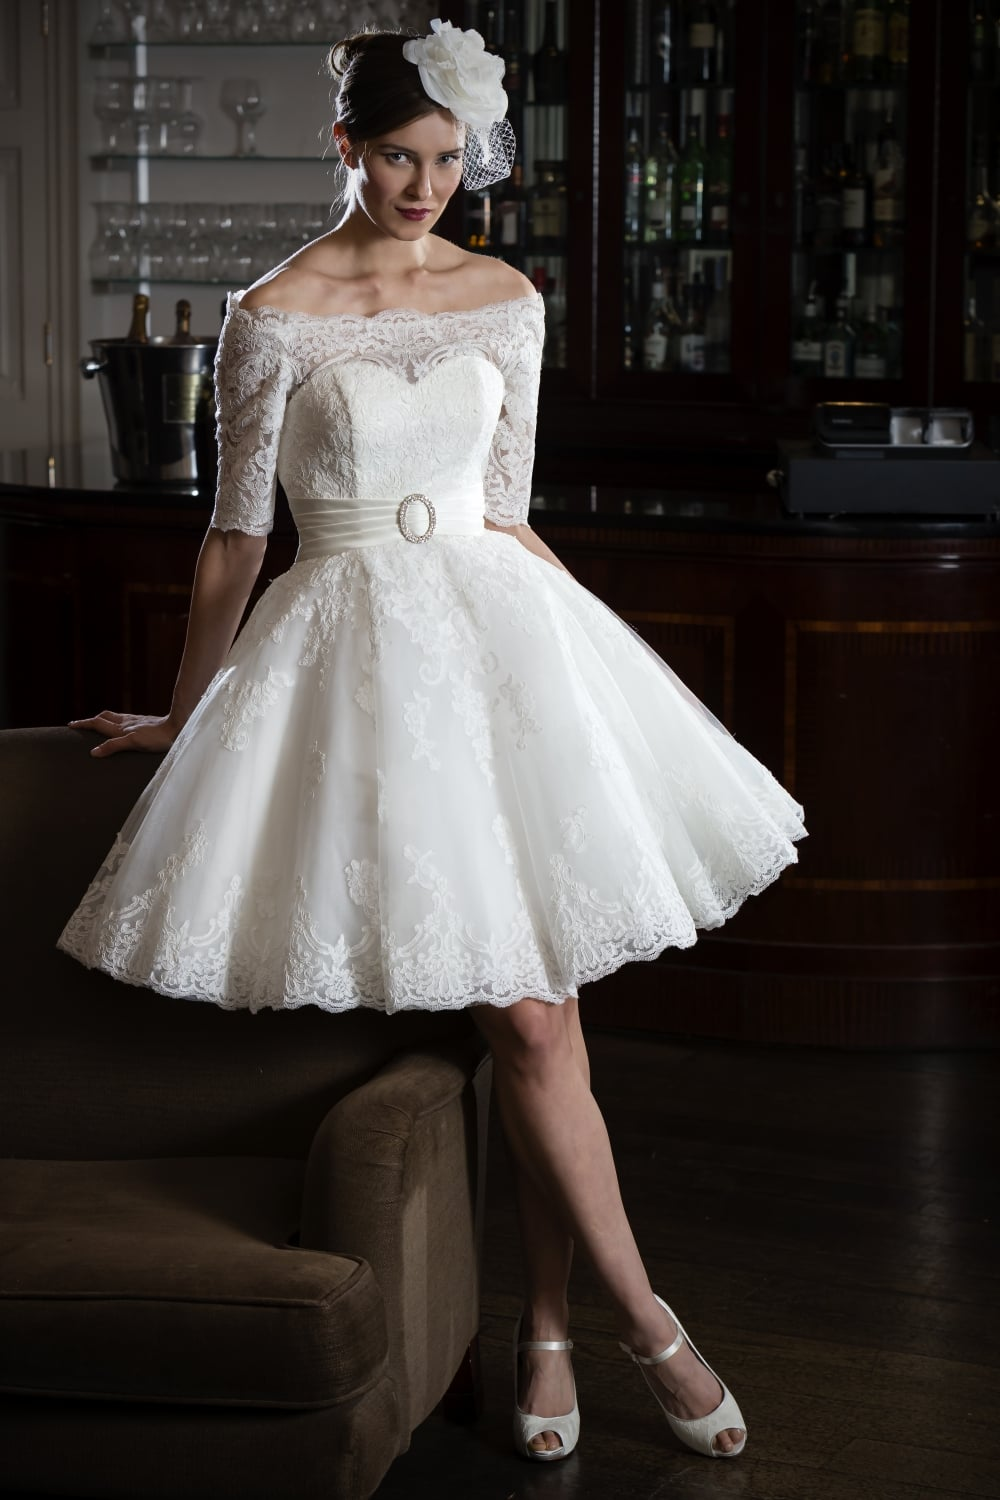 Mature Bride Wedding Dresses | Older Bride Wedding Dresses UK